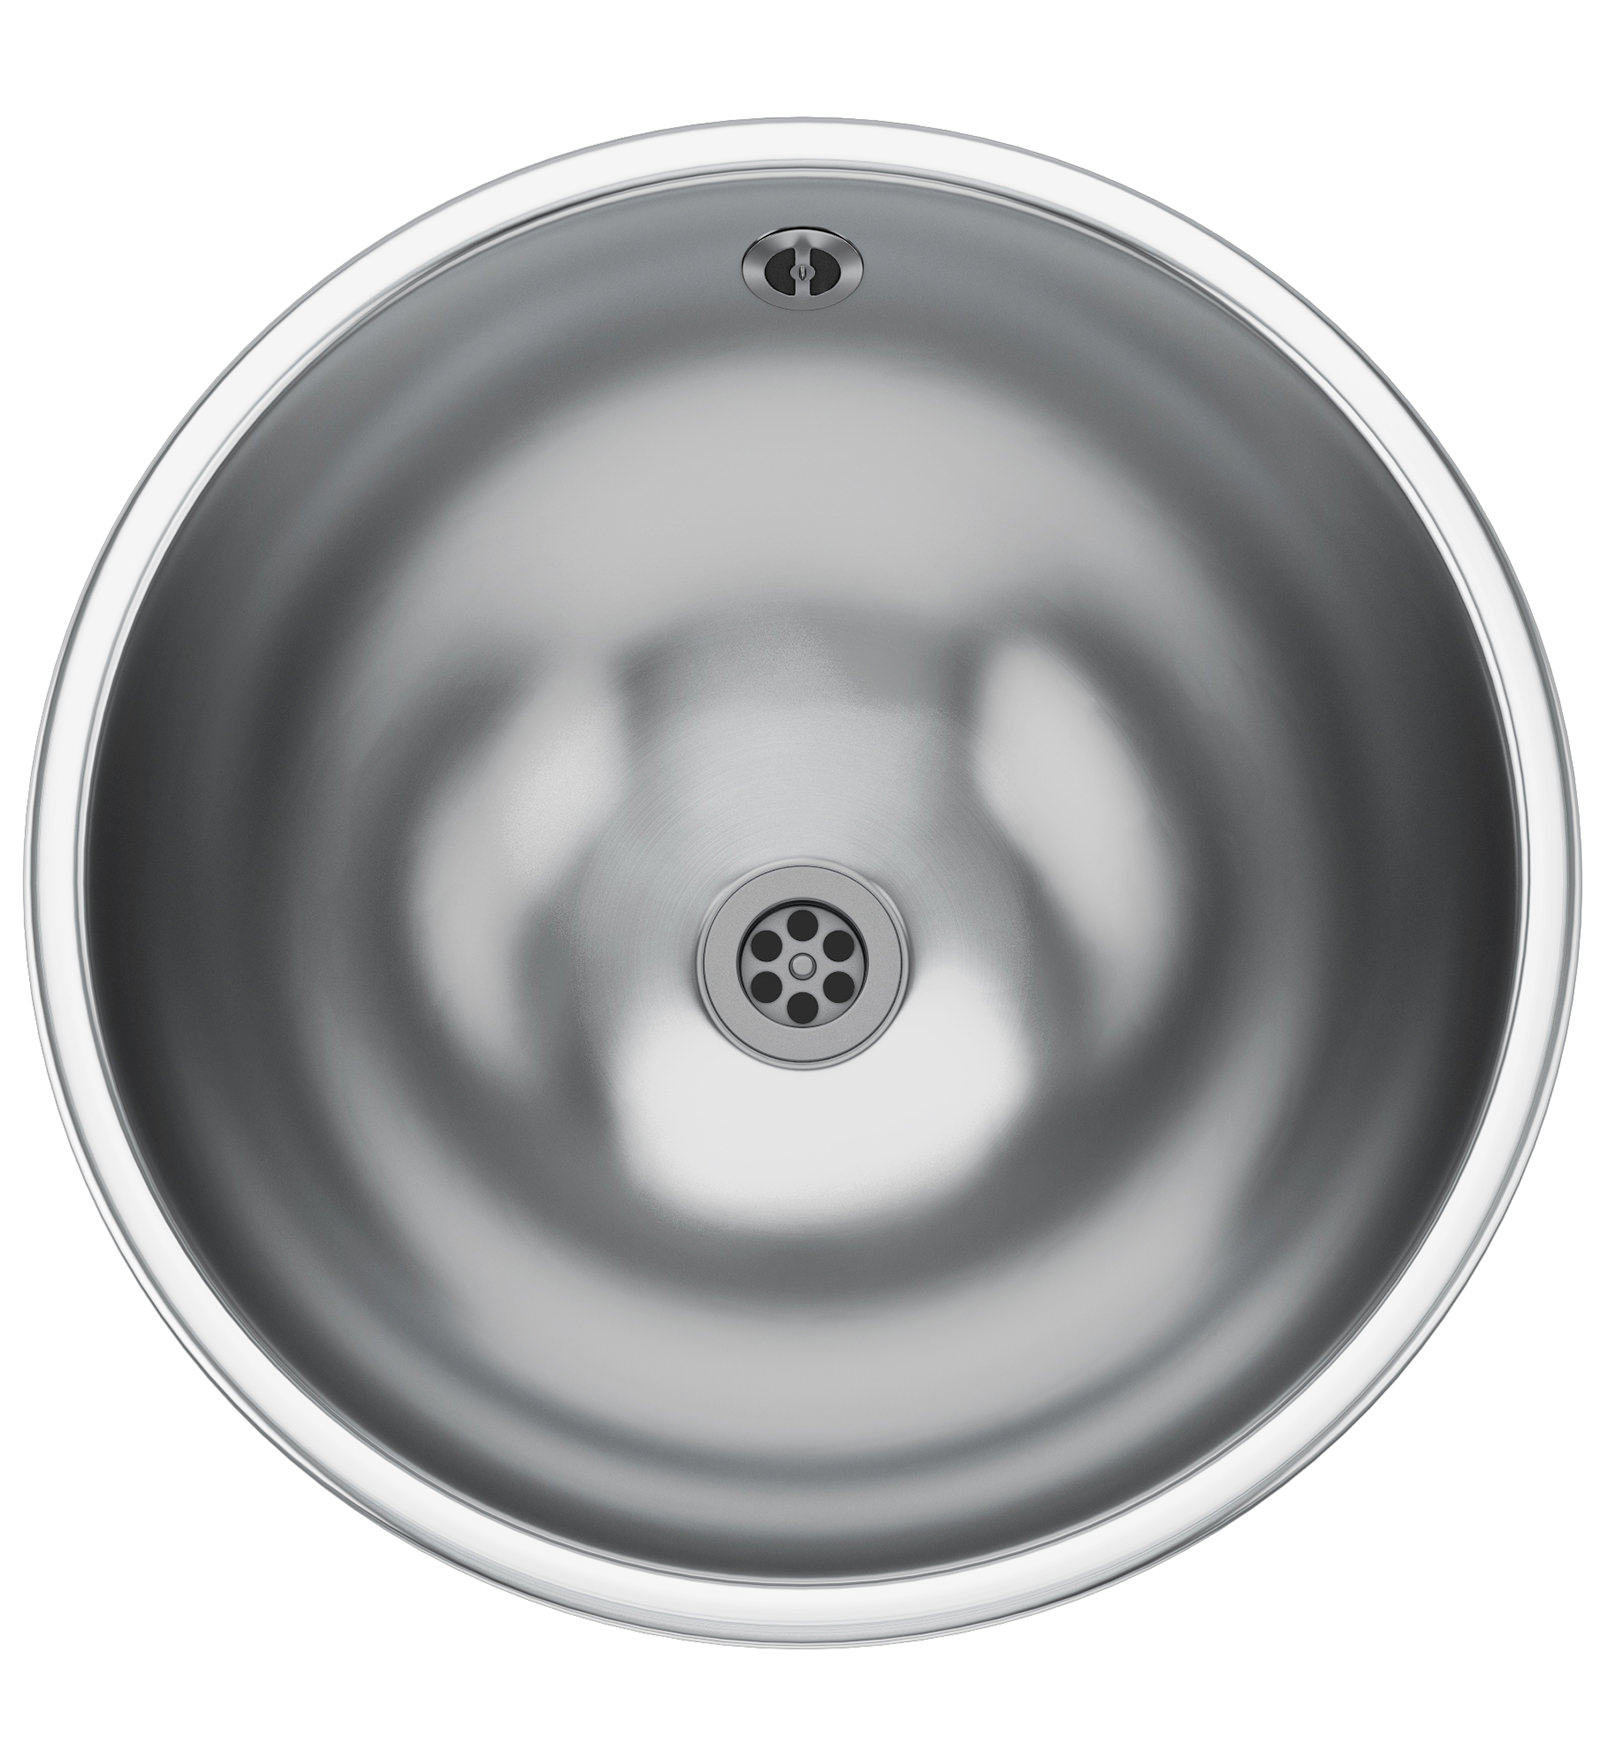 compact kitchen sink 2x3 rug franke rondo rnx 610 1.0 bowl stainless steel ...